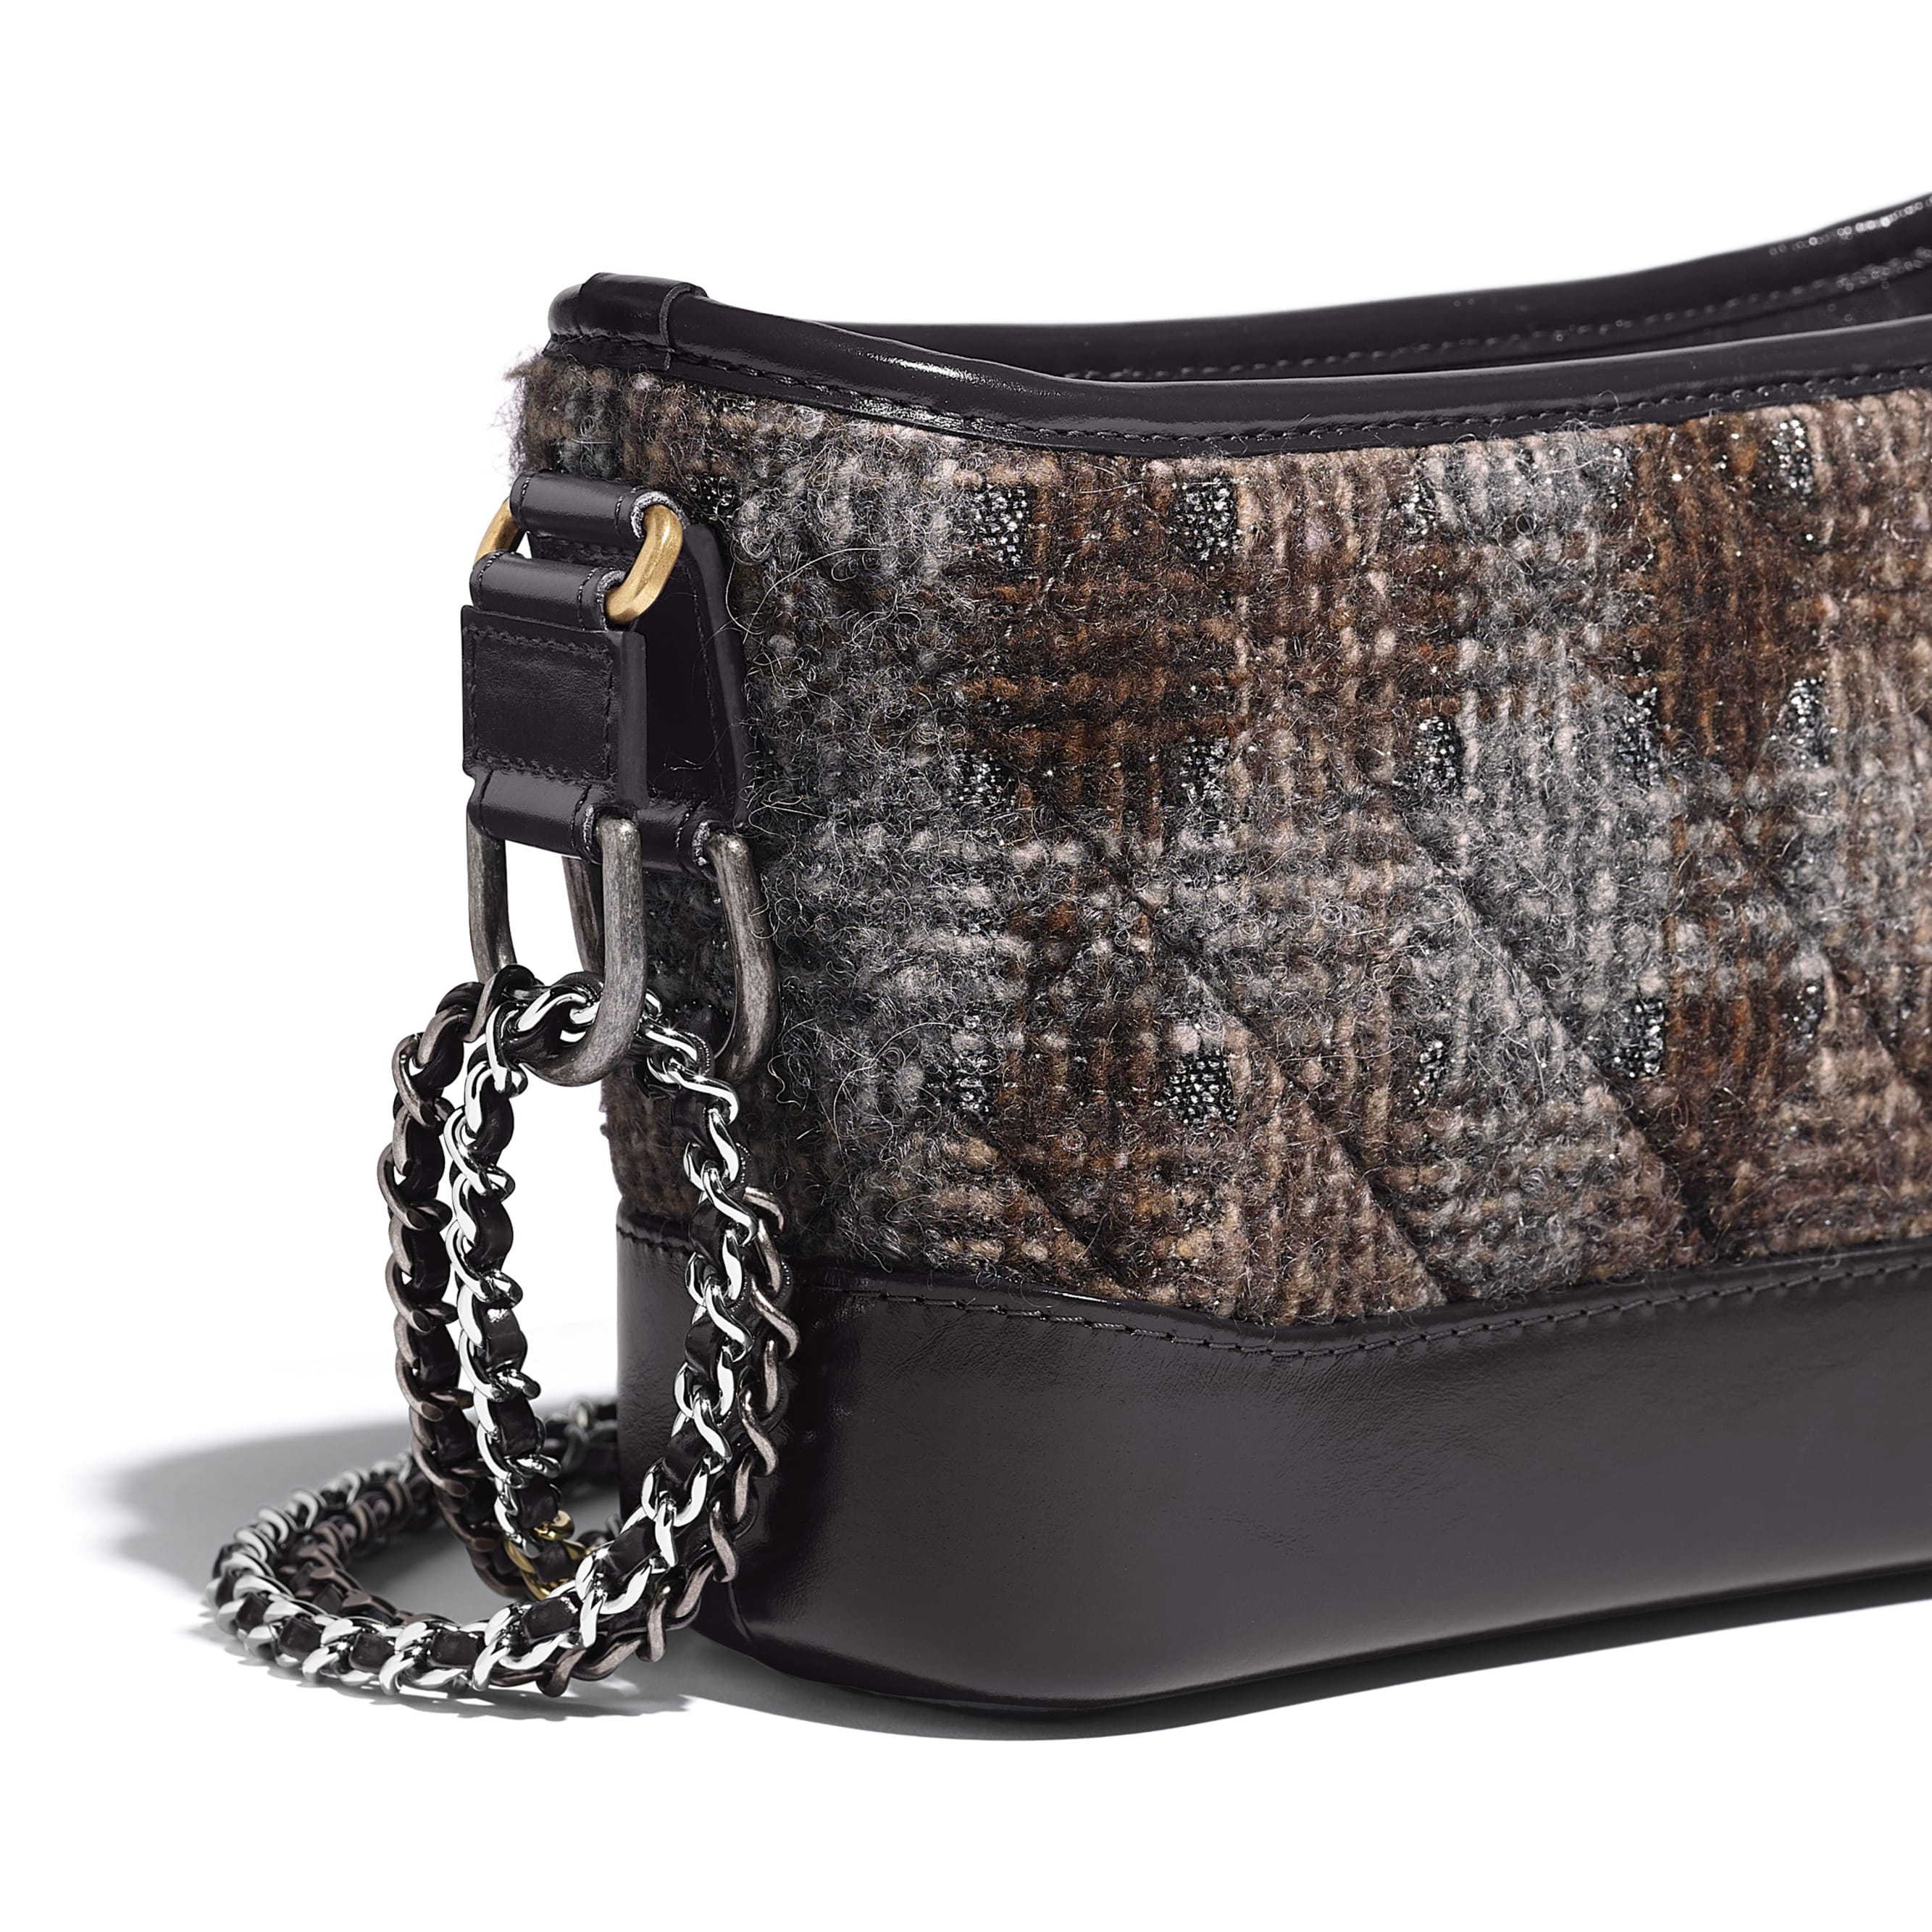 CHANEL'S GABRIELLE Small Hobo Bag - Gray, Brown & Silver - Tweed, Calfskin, Gold-Tone & Silver-Tone Metal - Extra view - see standard sized version